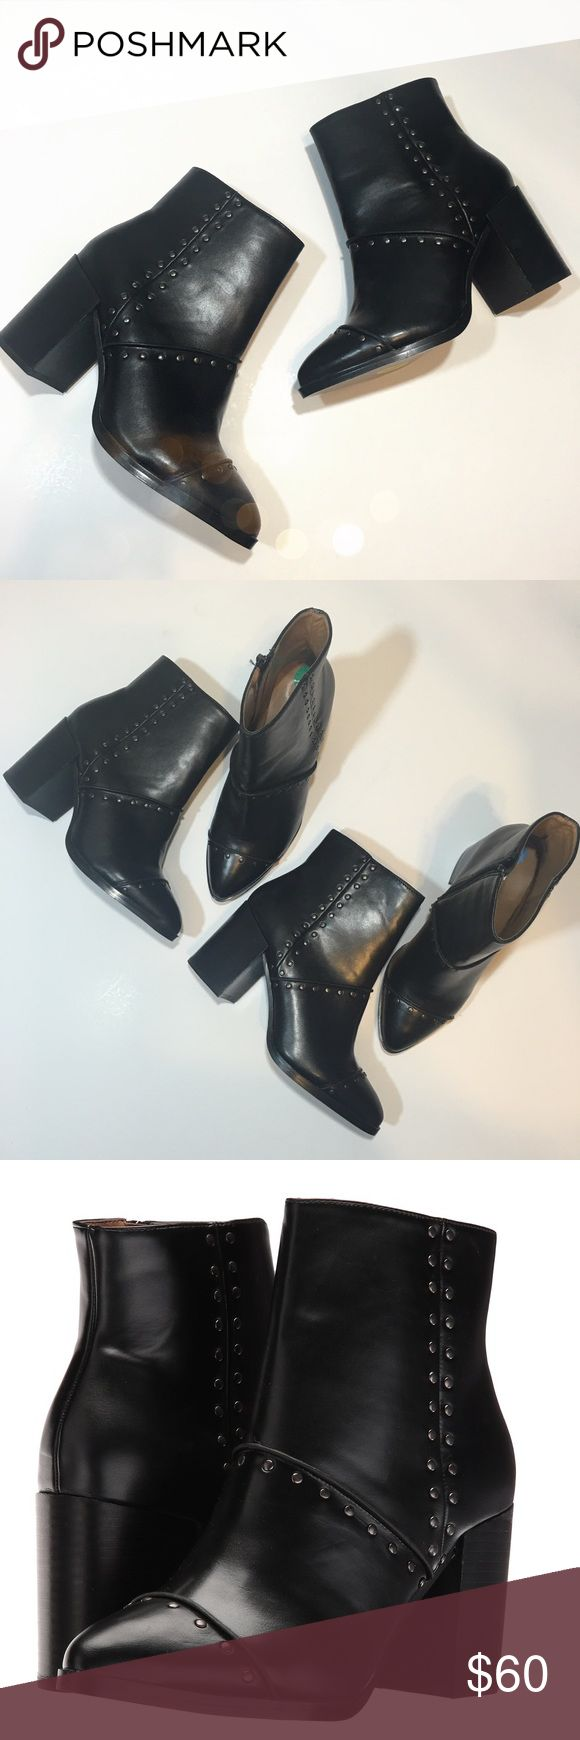 Report Vegan Leather Studded Ankle Booties Super cute and perfectly on trend! Brand new and never worn. Block heel and gunmetal studs. Two sizes available, size 8 & 6.5. No trades!! 0122171500tmr Report Shoes Ankle Boots & Booties